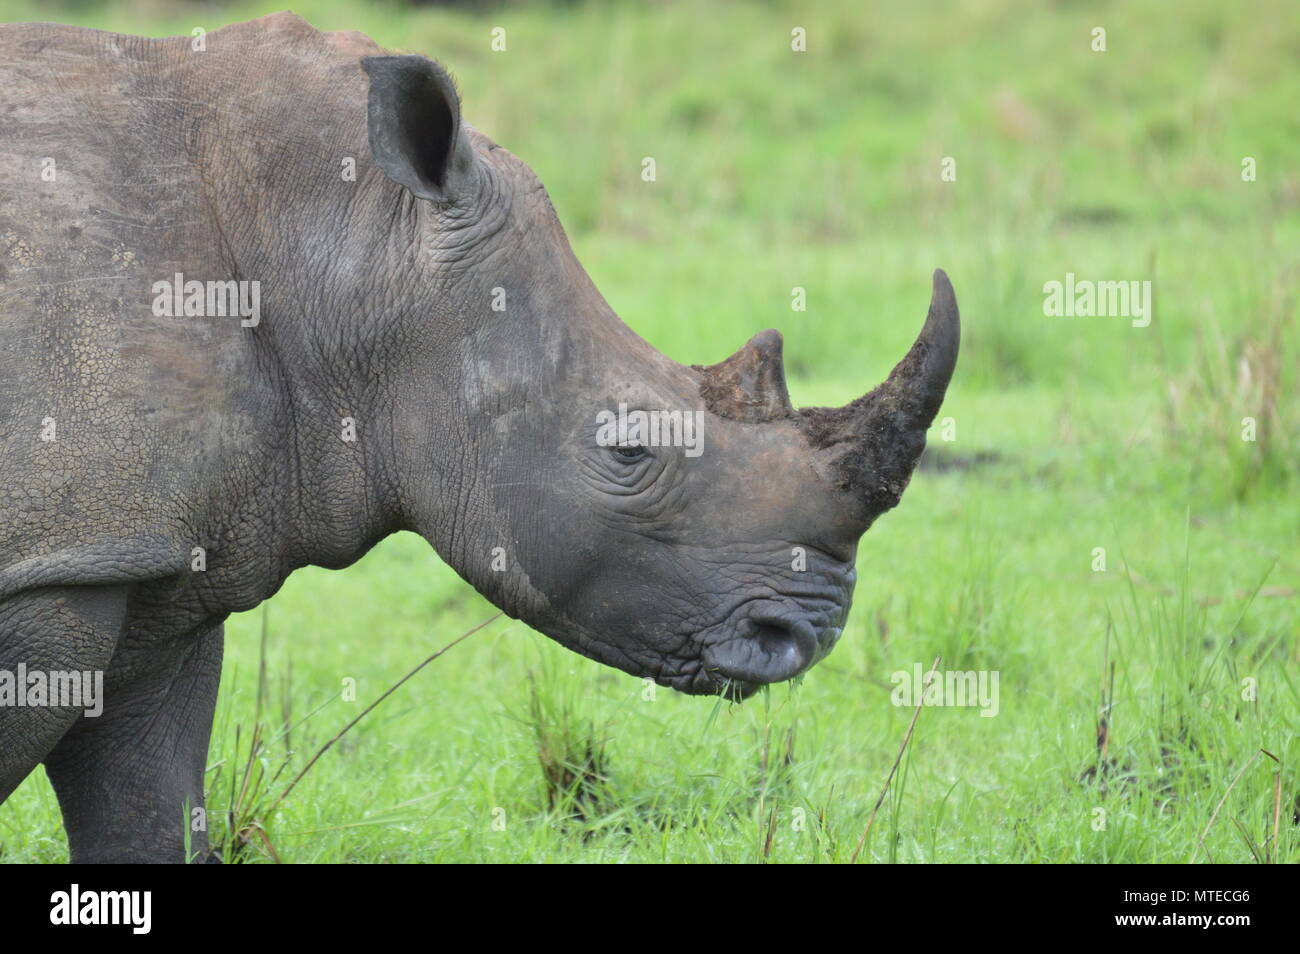 Pregnant rhino with full horn - Stock Image